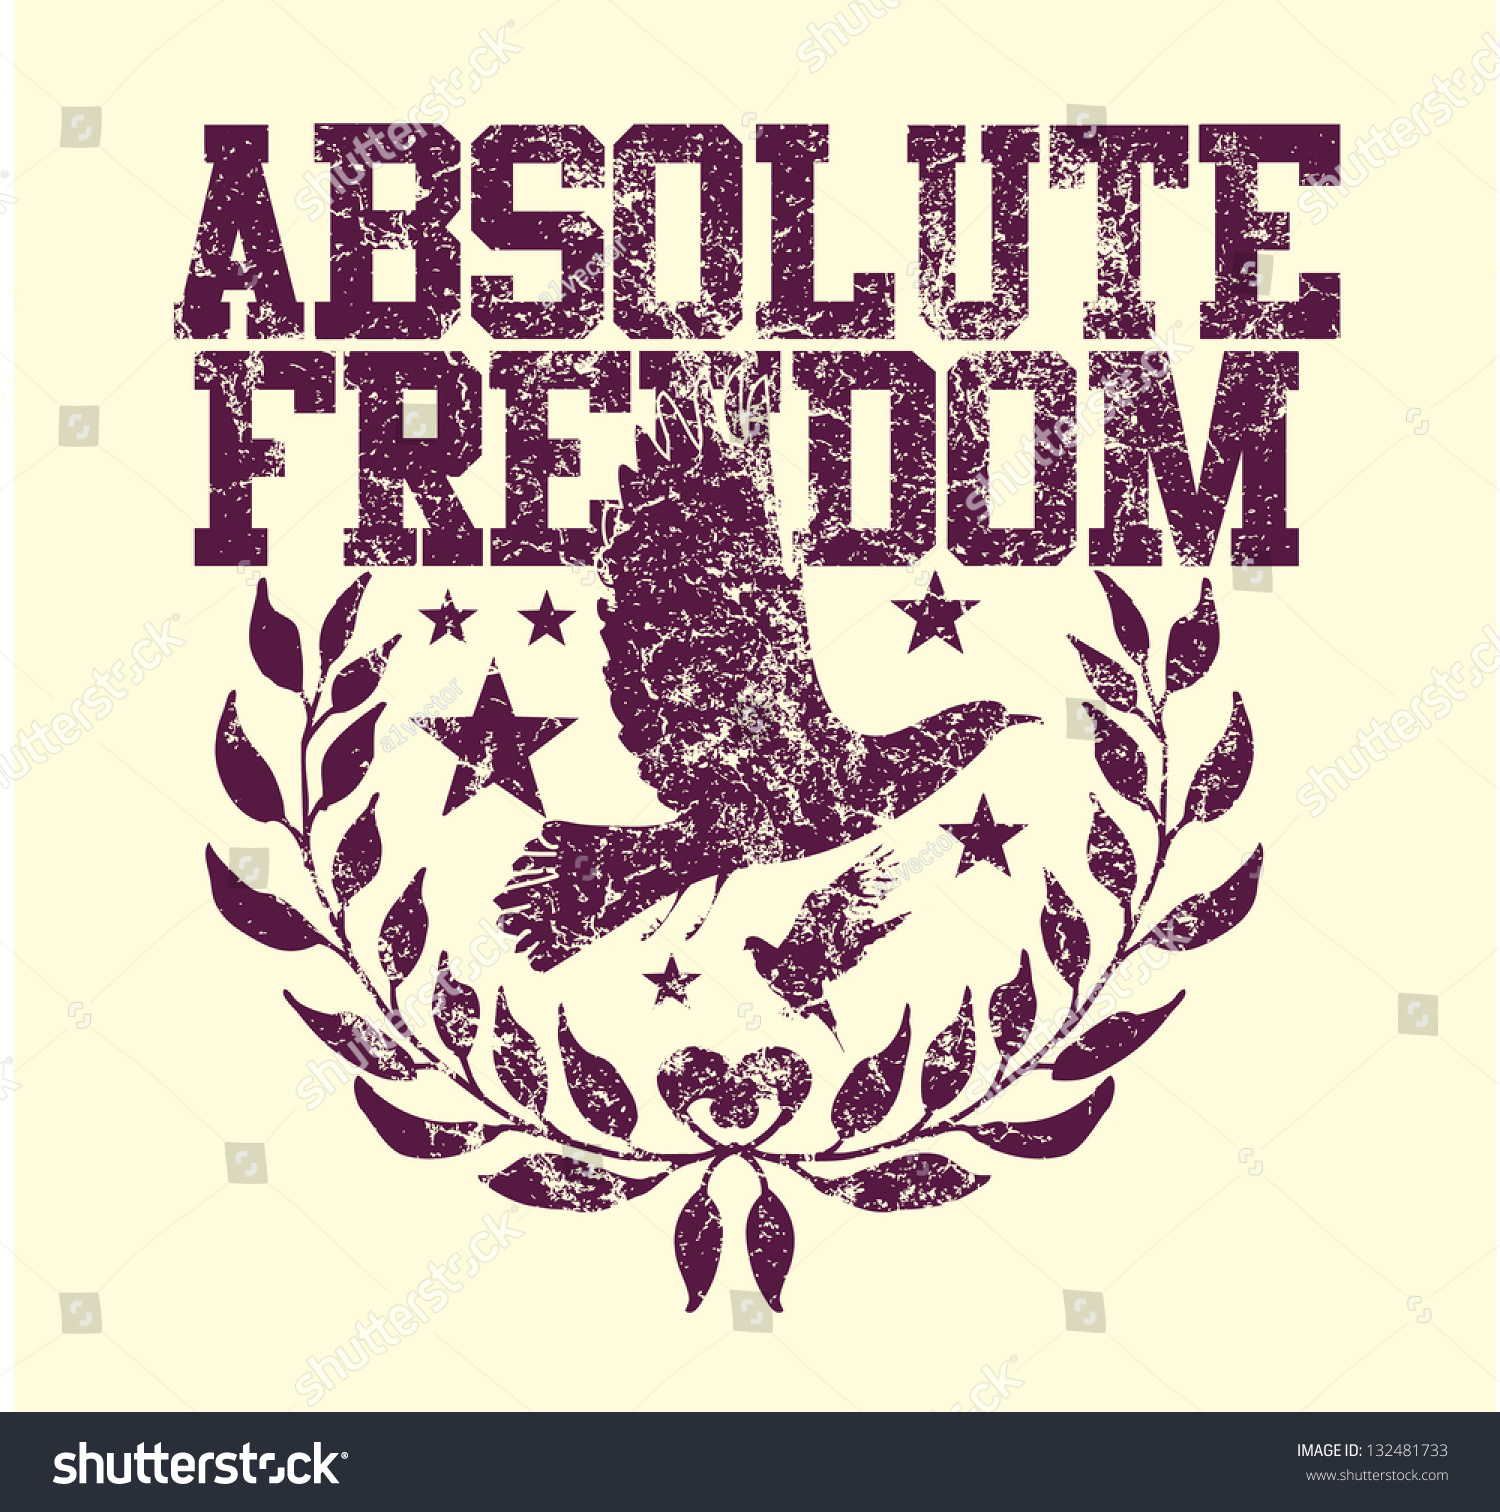 Absolute freedom vector art 132481733 shutterstock - Treehouses the absolute freedom ...